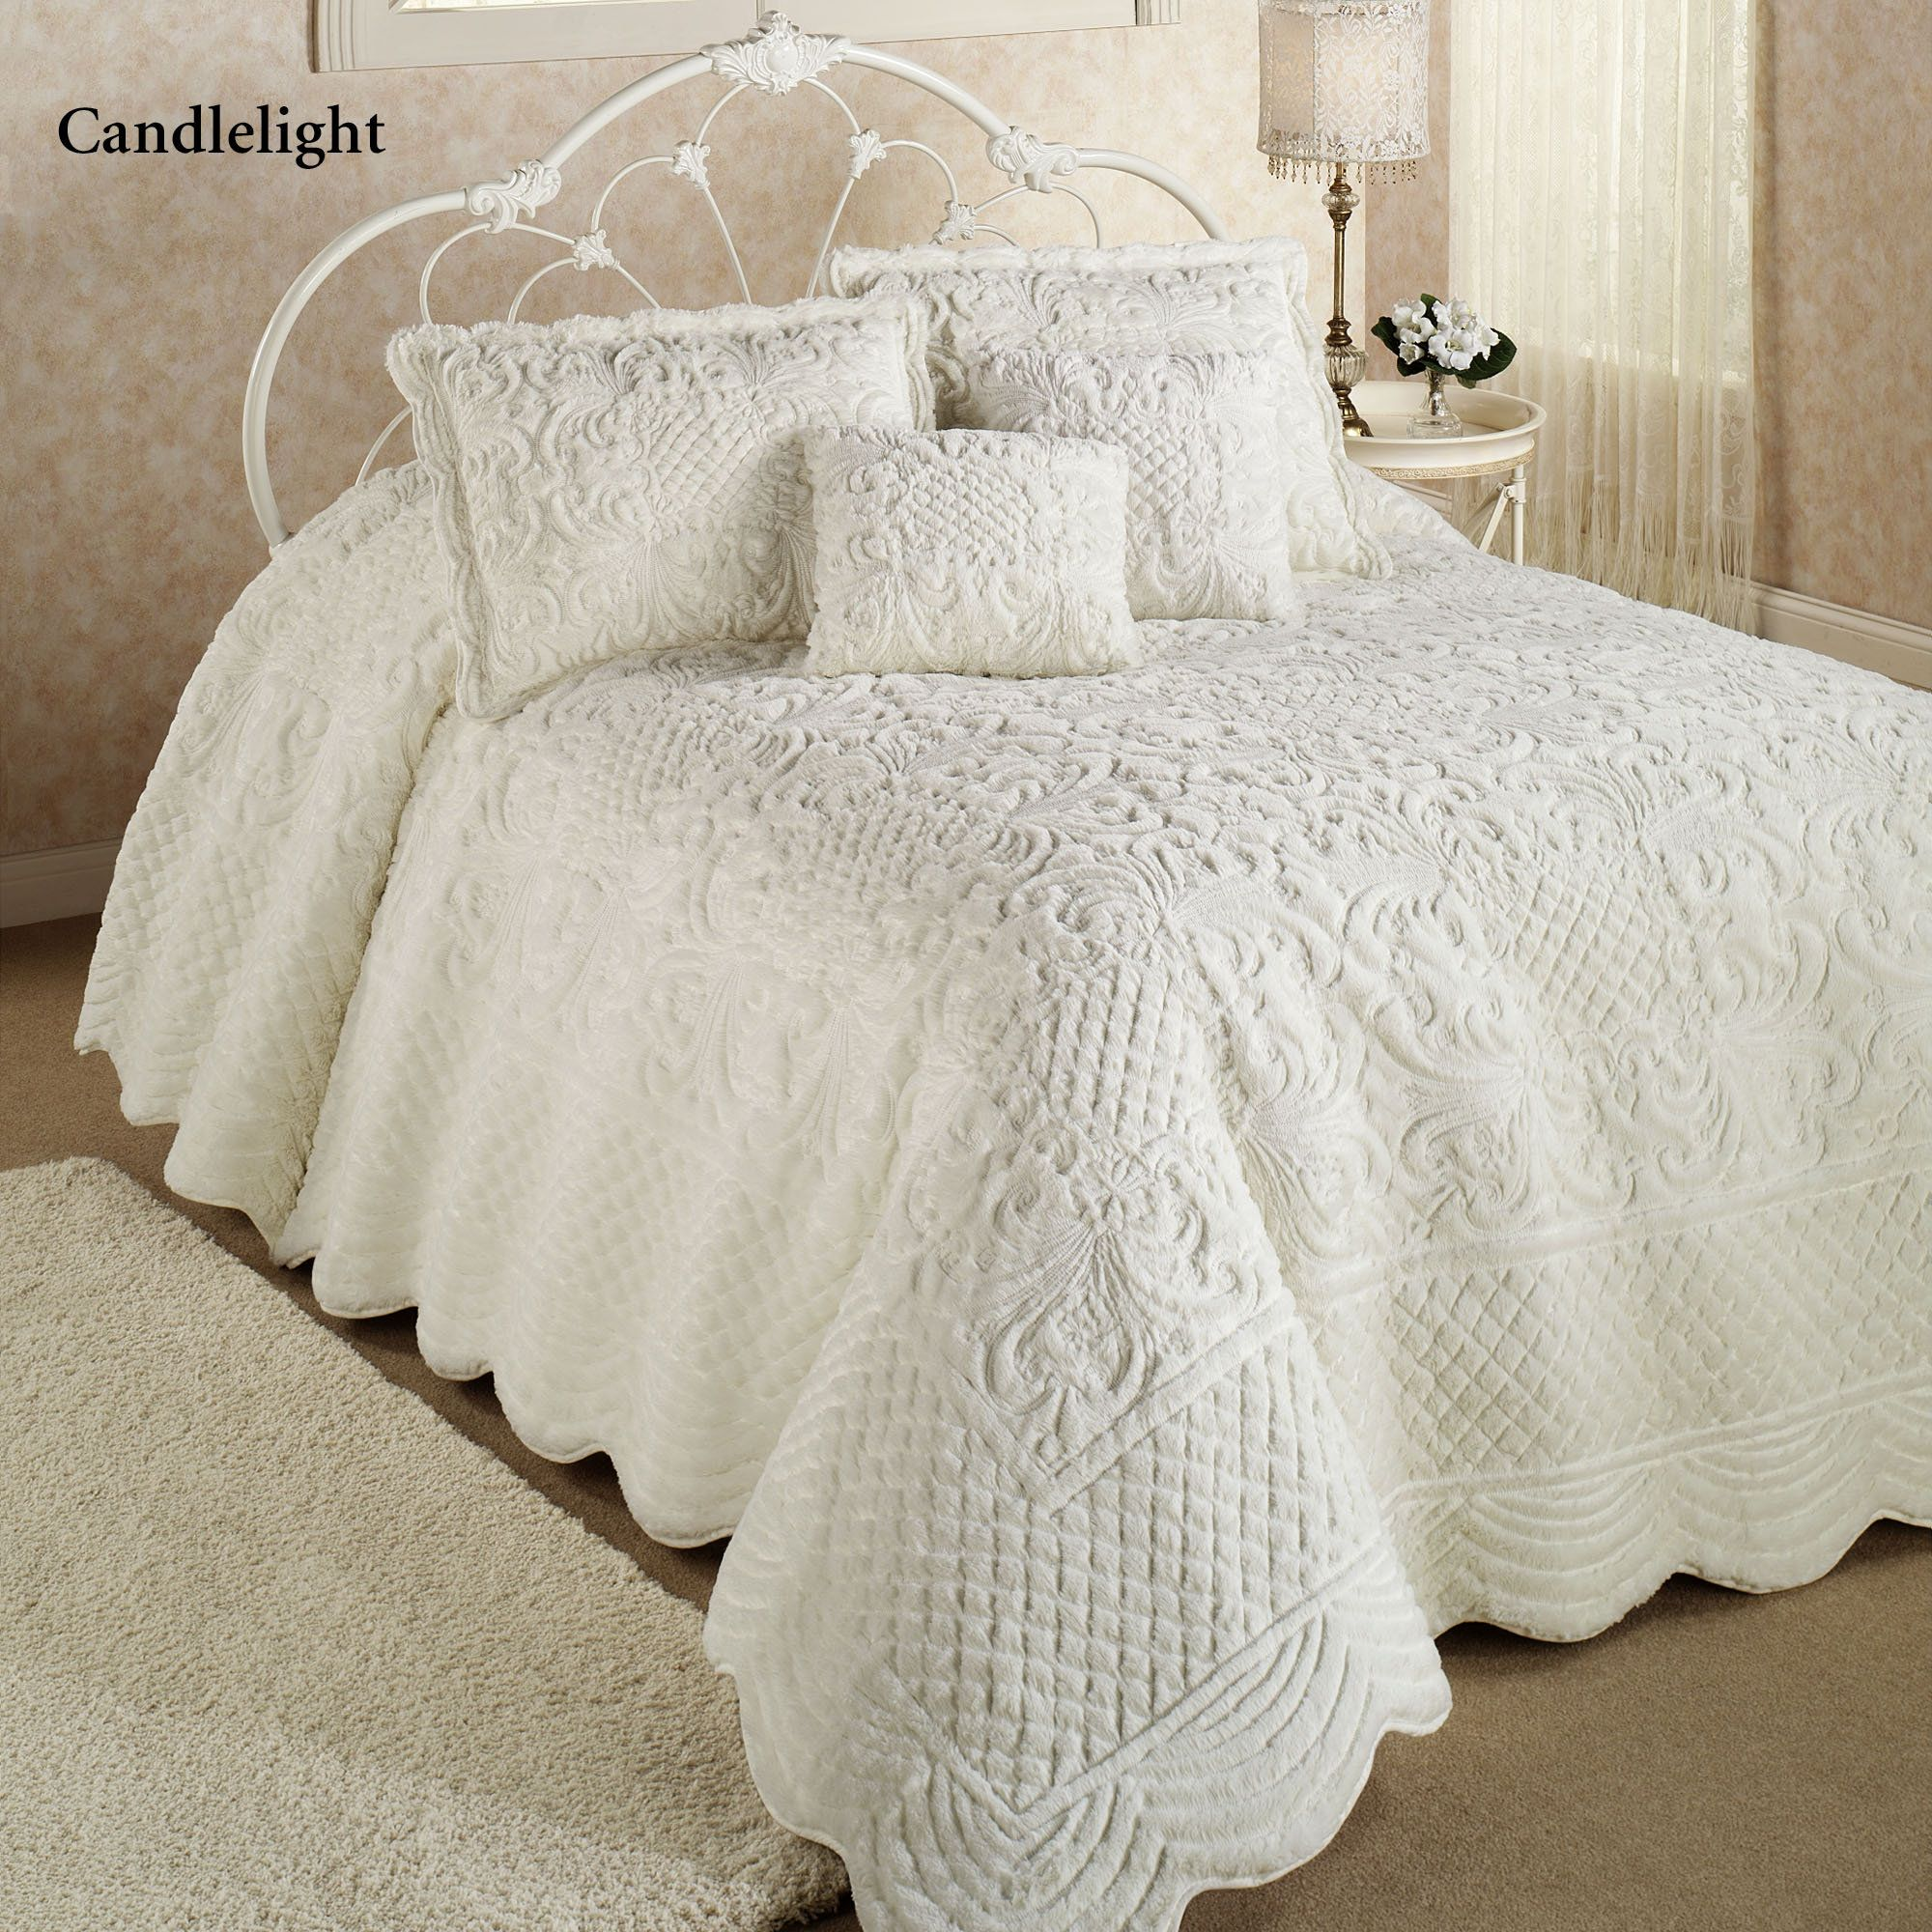 Whisper Candlelight Soft Oversized Quilted Bedspread White Bedspreads Small Bedroom Decor Bed Spreads